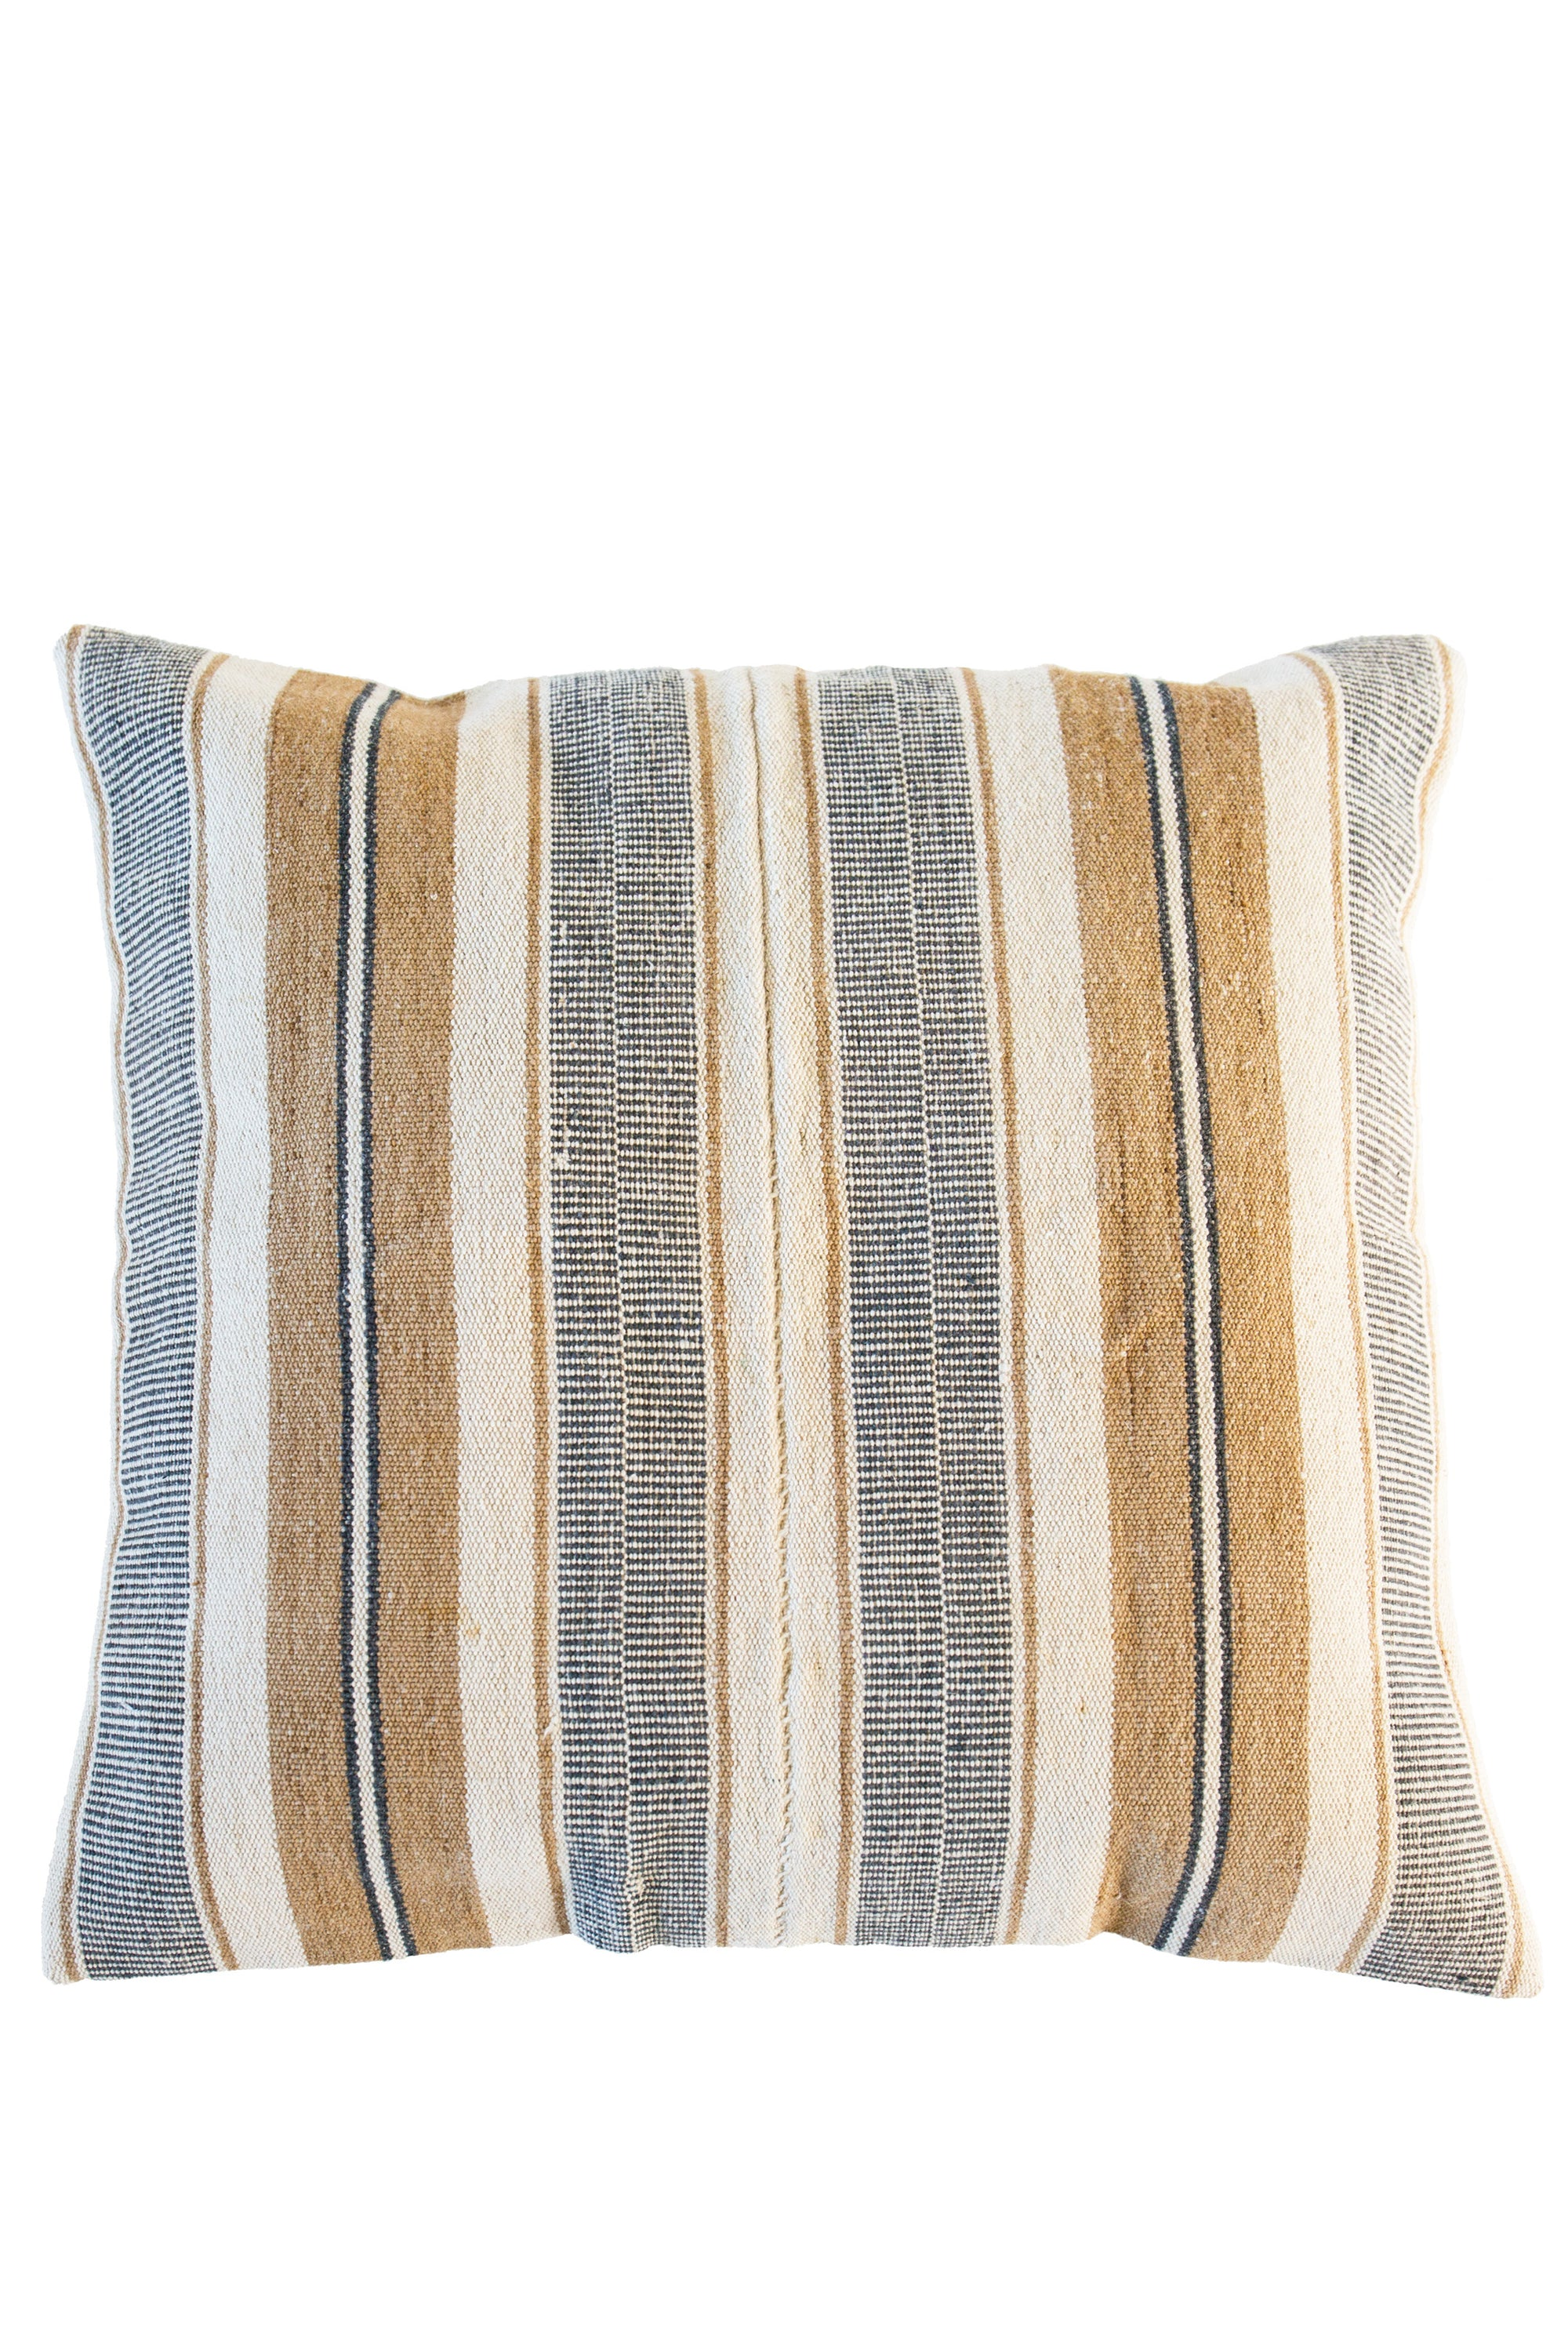 Elderflowers Turkish Kilim Cushion